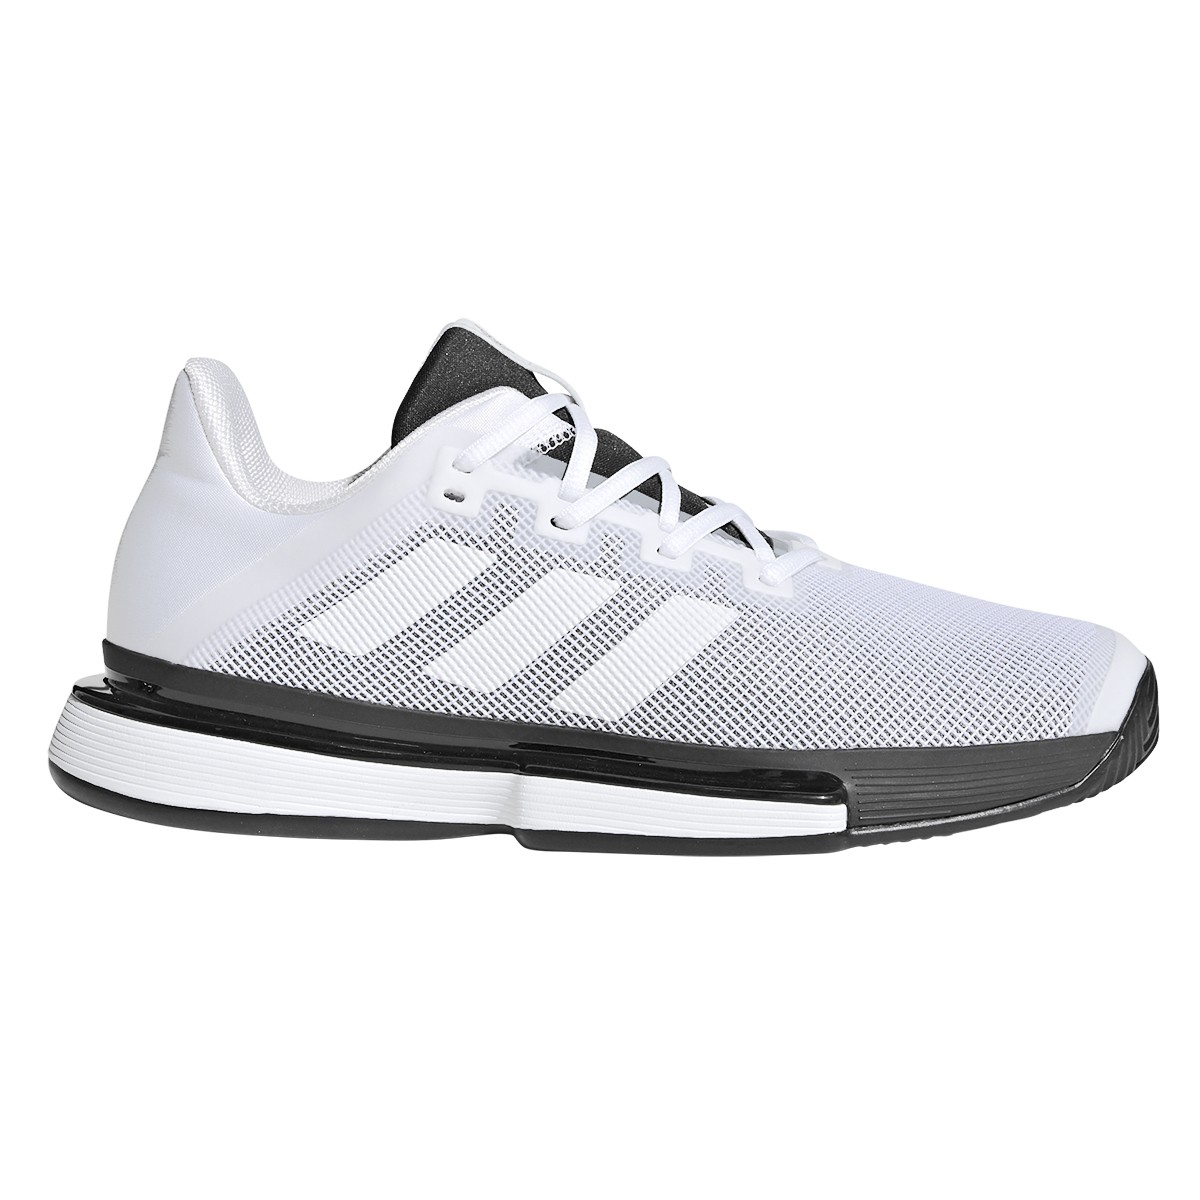 pick up sale retailer the cheapest CHAUSSURES ADIDAS SOLEMATCH BOUNCE TOUTES SURFACES - ADIDAS ...